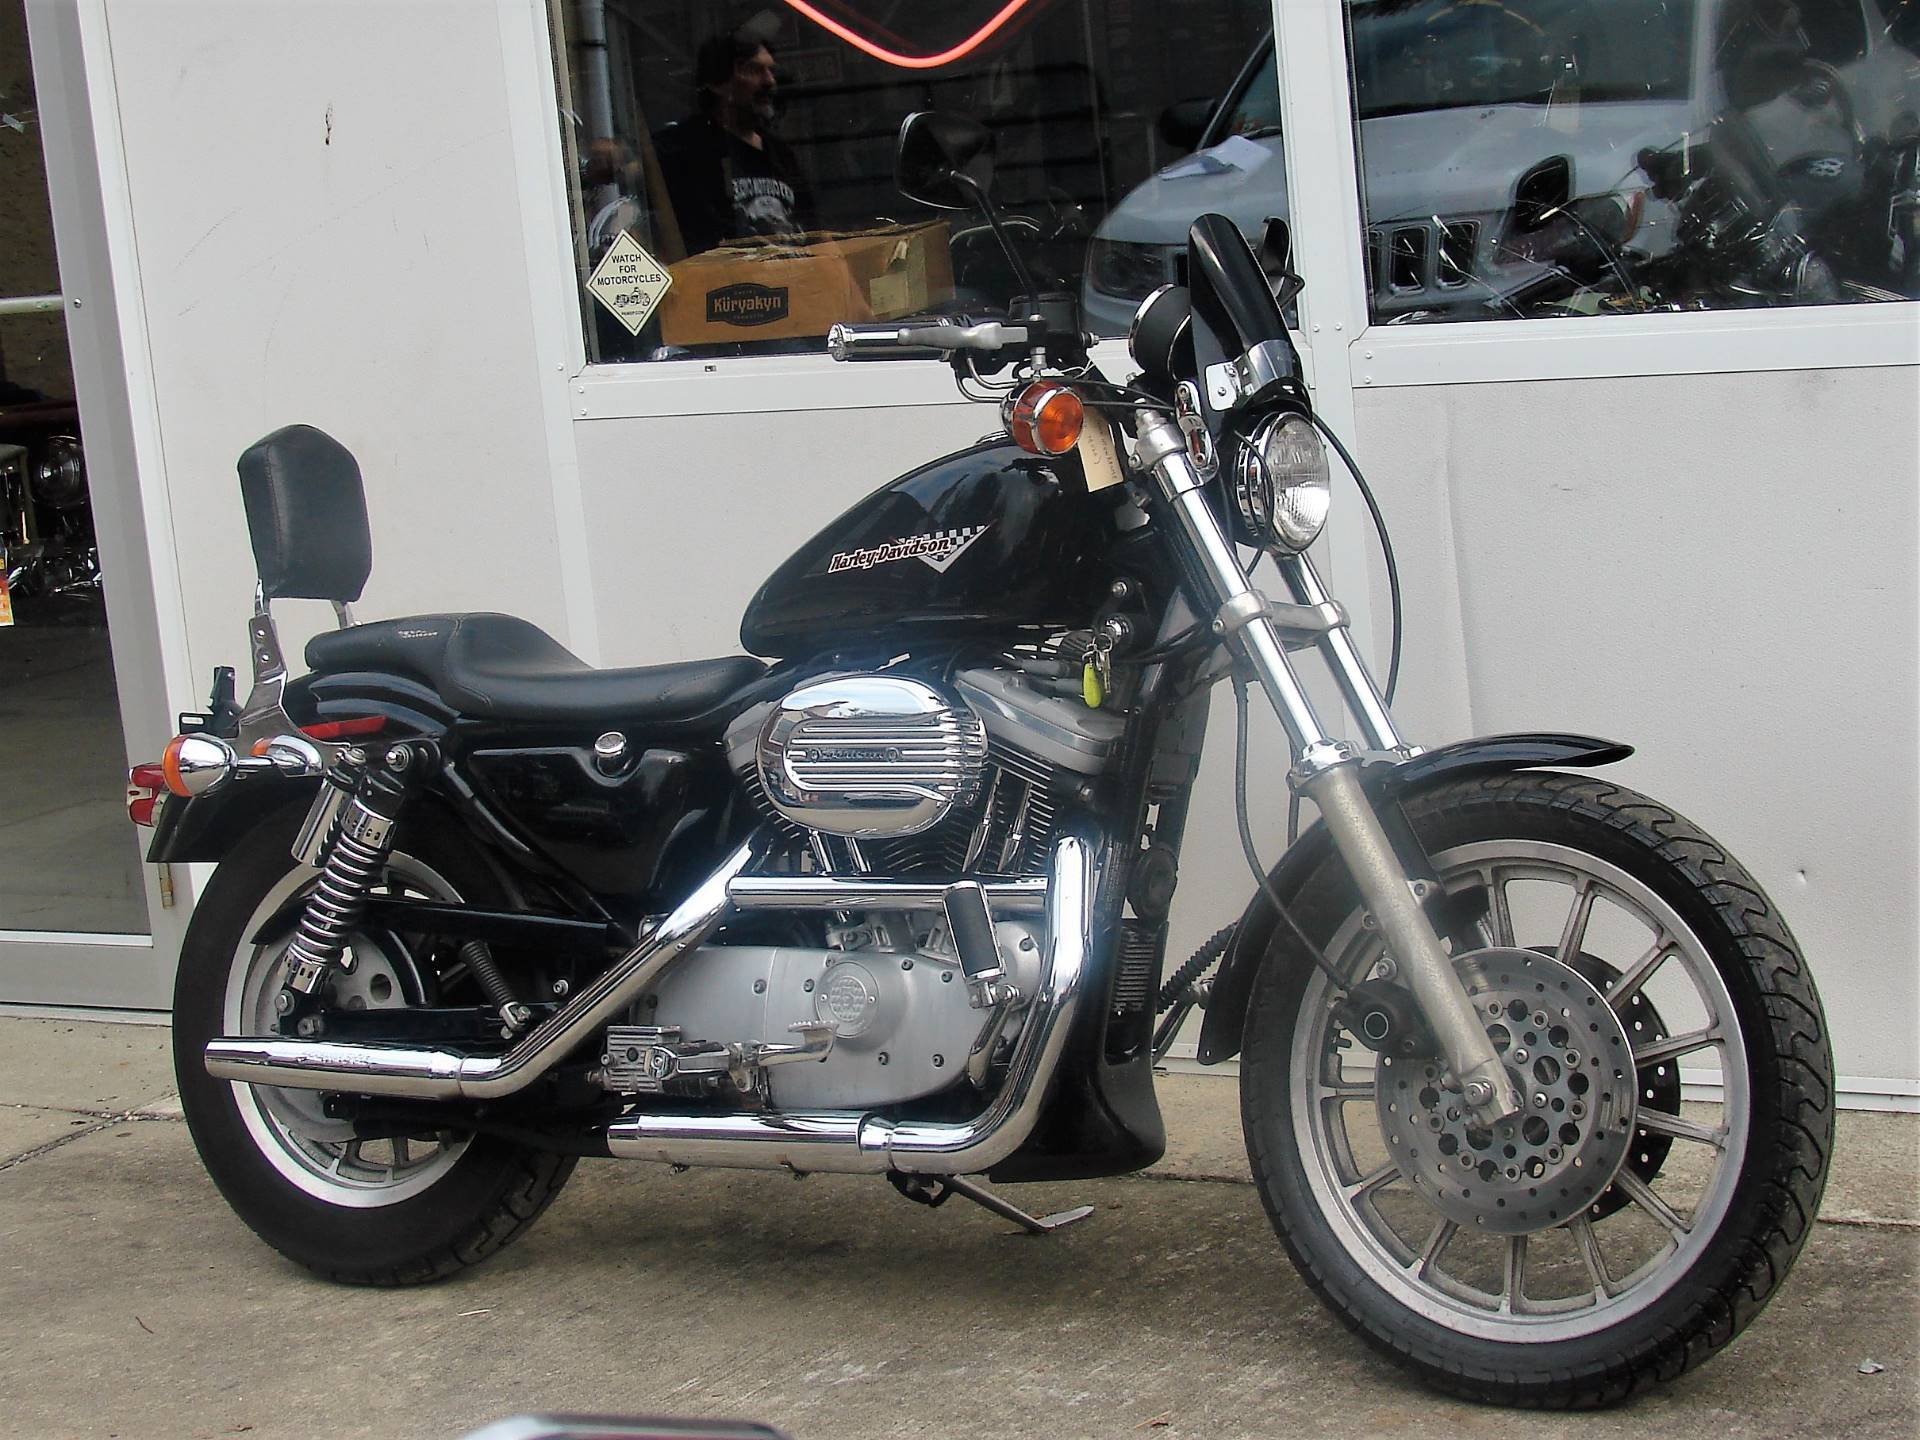 1998 Harley-Davidson XL 1200cc Sportster Sport  -  (Black w/ Maroon Logo) in Williamstown, New Jersey - Photo 5